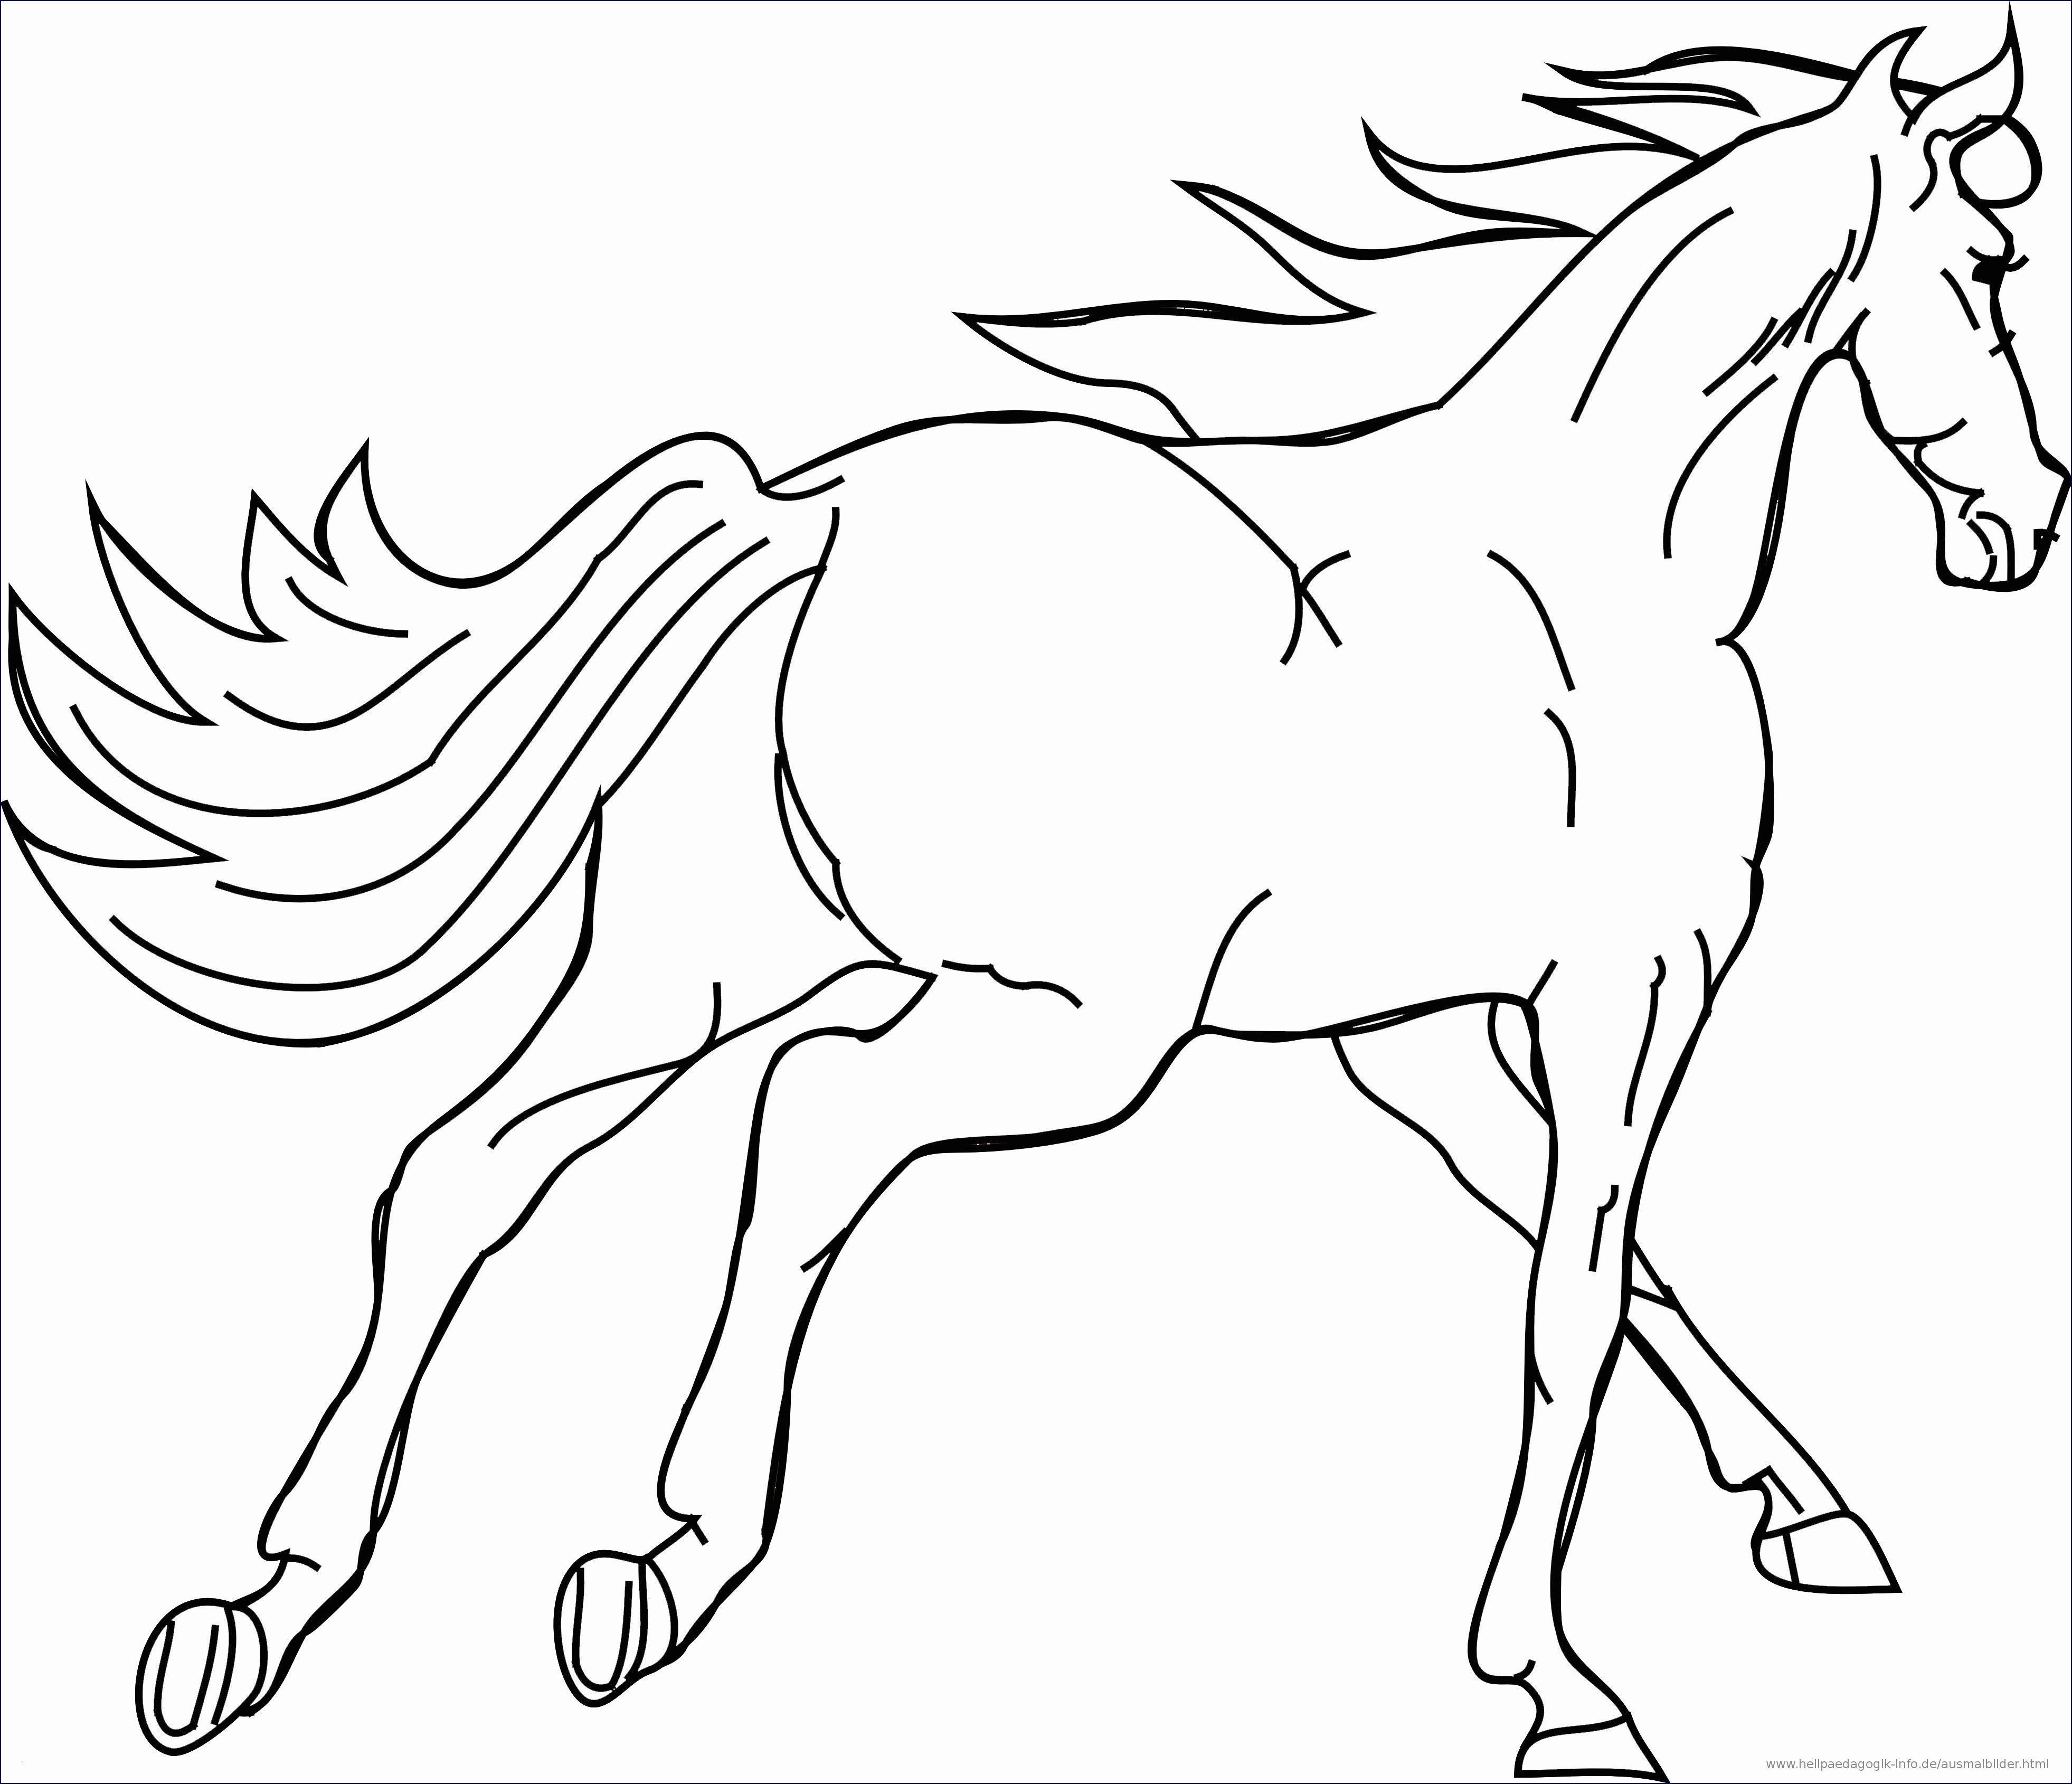 Neu Malvorlagen Tiere Im Wasser Horse Coloring Pages Horse Coloring Horse Galloping [ 3379 x 3925 Pixel ]